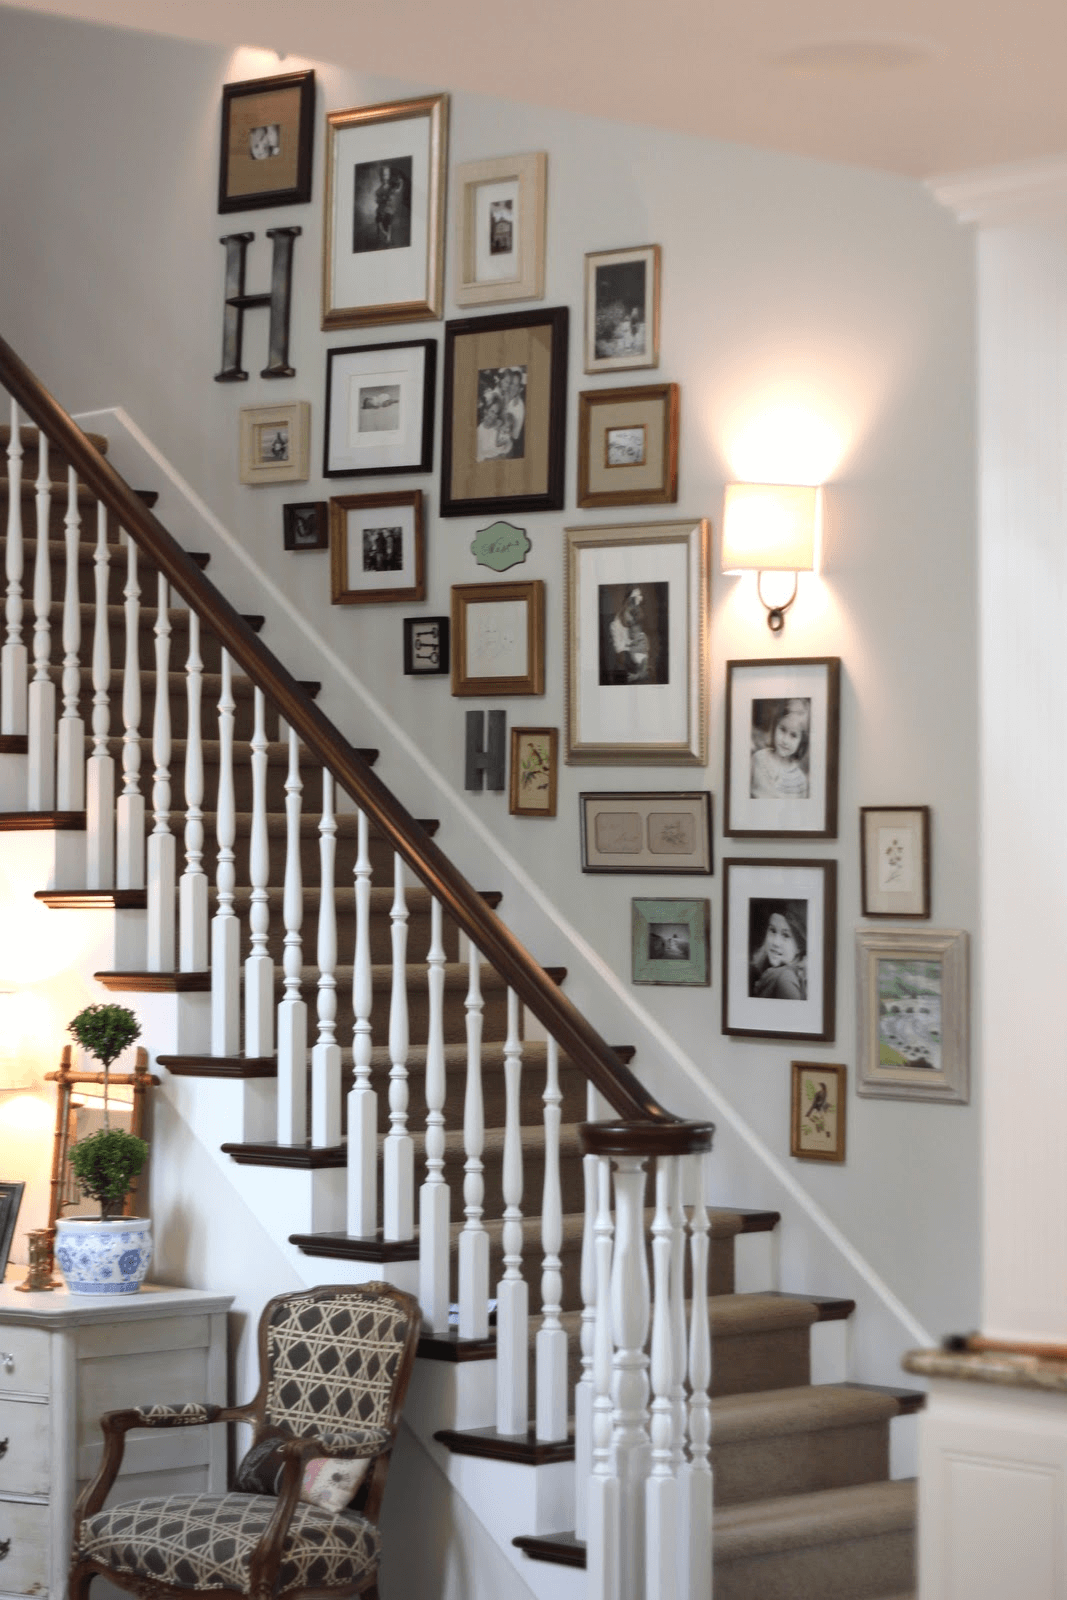 How to Decorate a Stairway Wall passionately